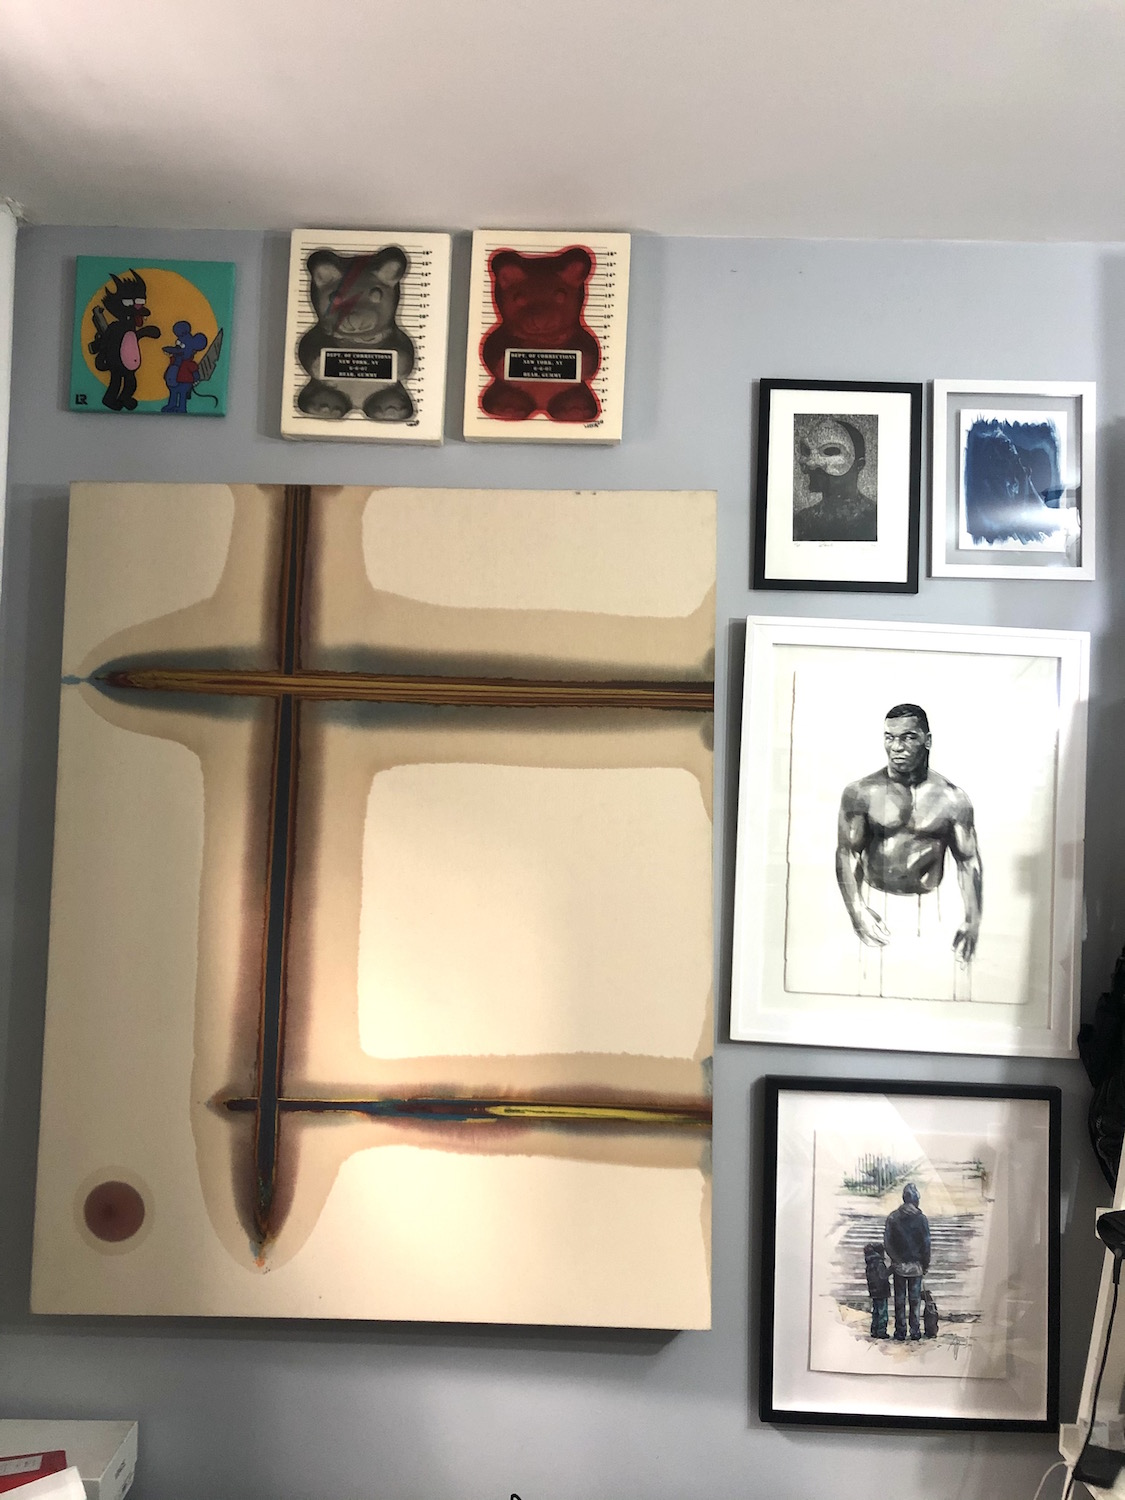 Some art pieces by Lee Everett, Robert  Peterson, Bill Hoffman, Jame Webber, L.R, and WhisBe. Courtesy of Guy Stanley Philoche.